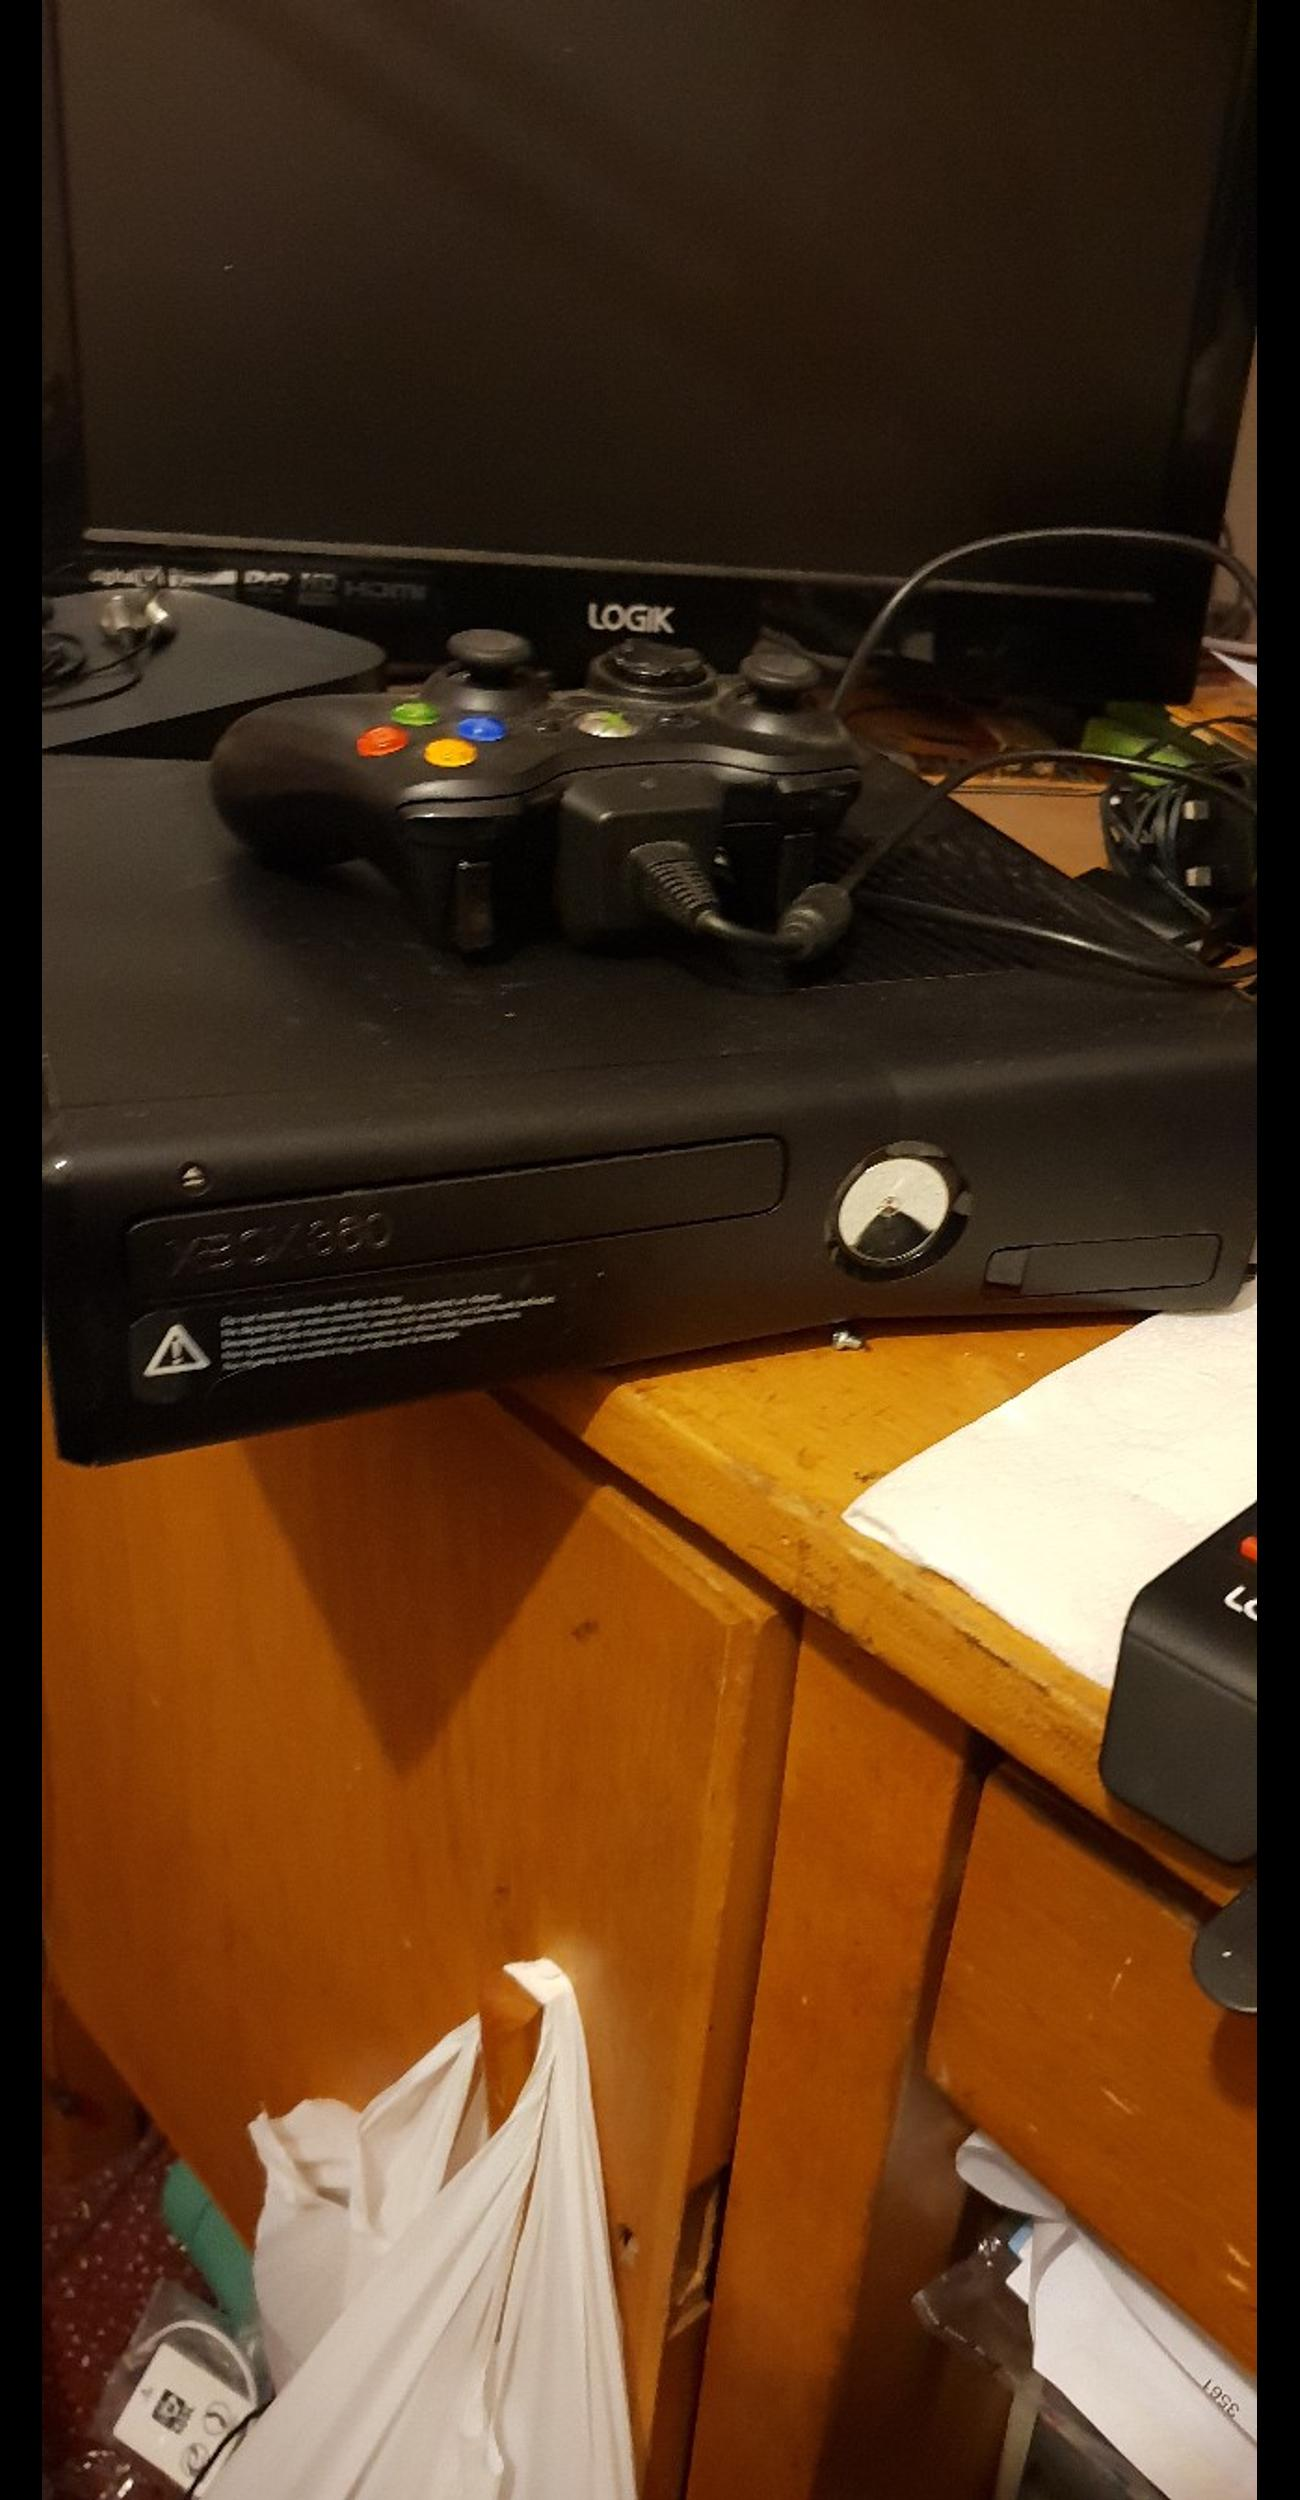 This xbox as been used 3 times